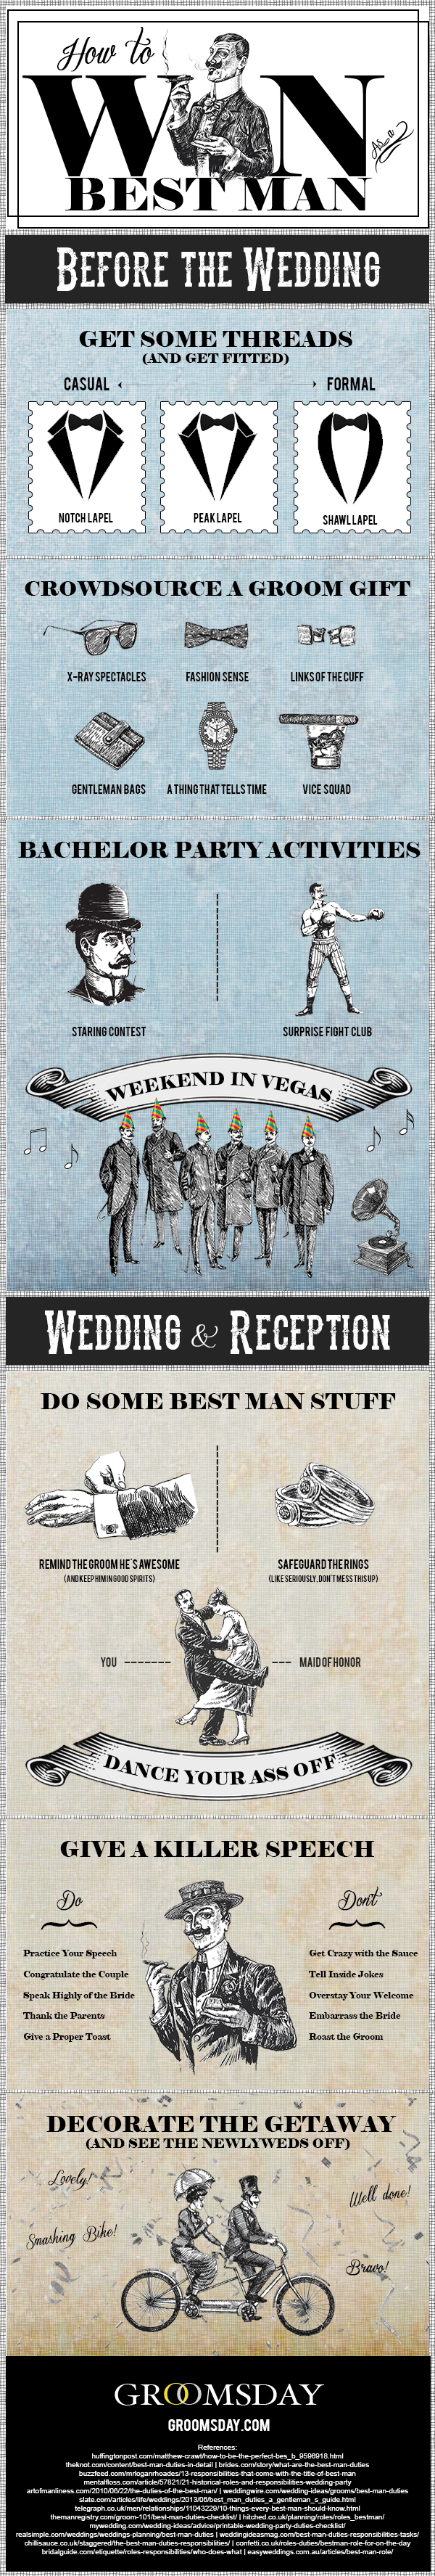 Best Man Duties Infographic